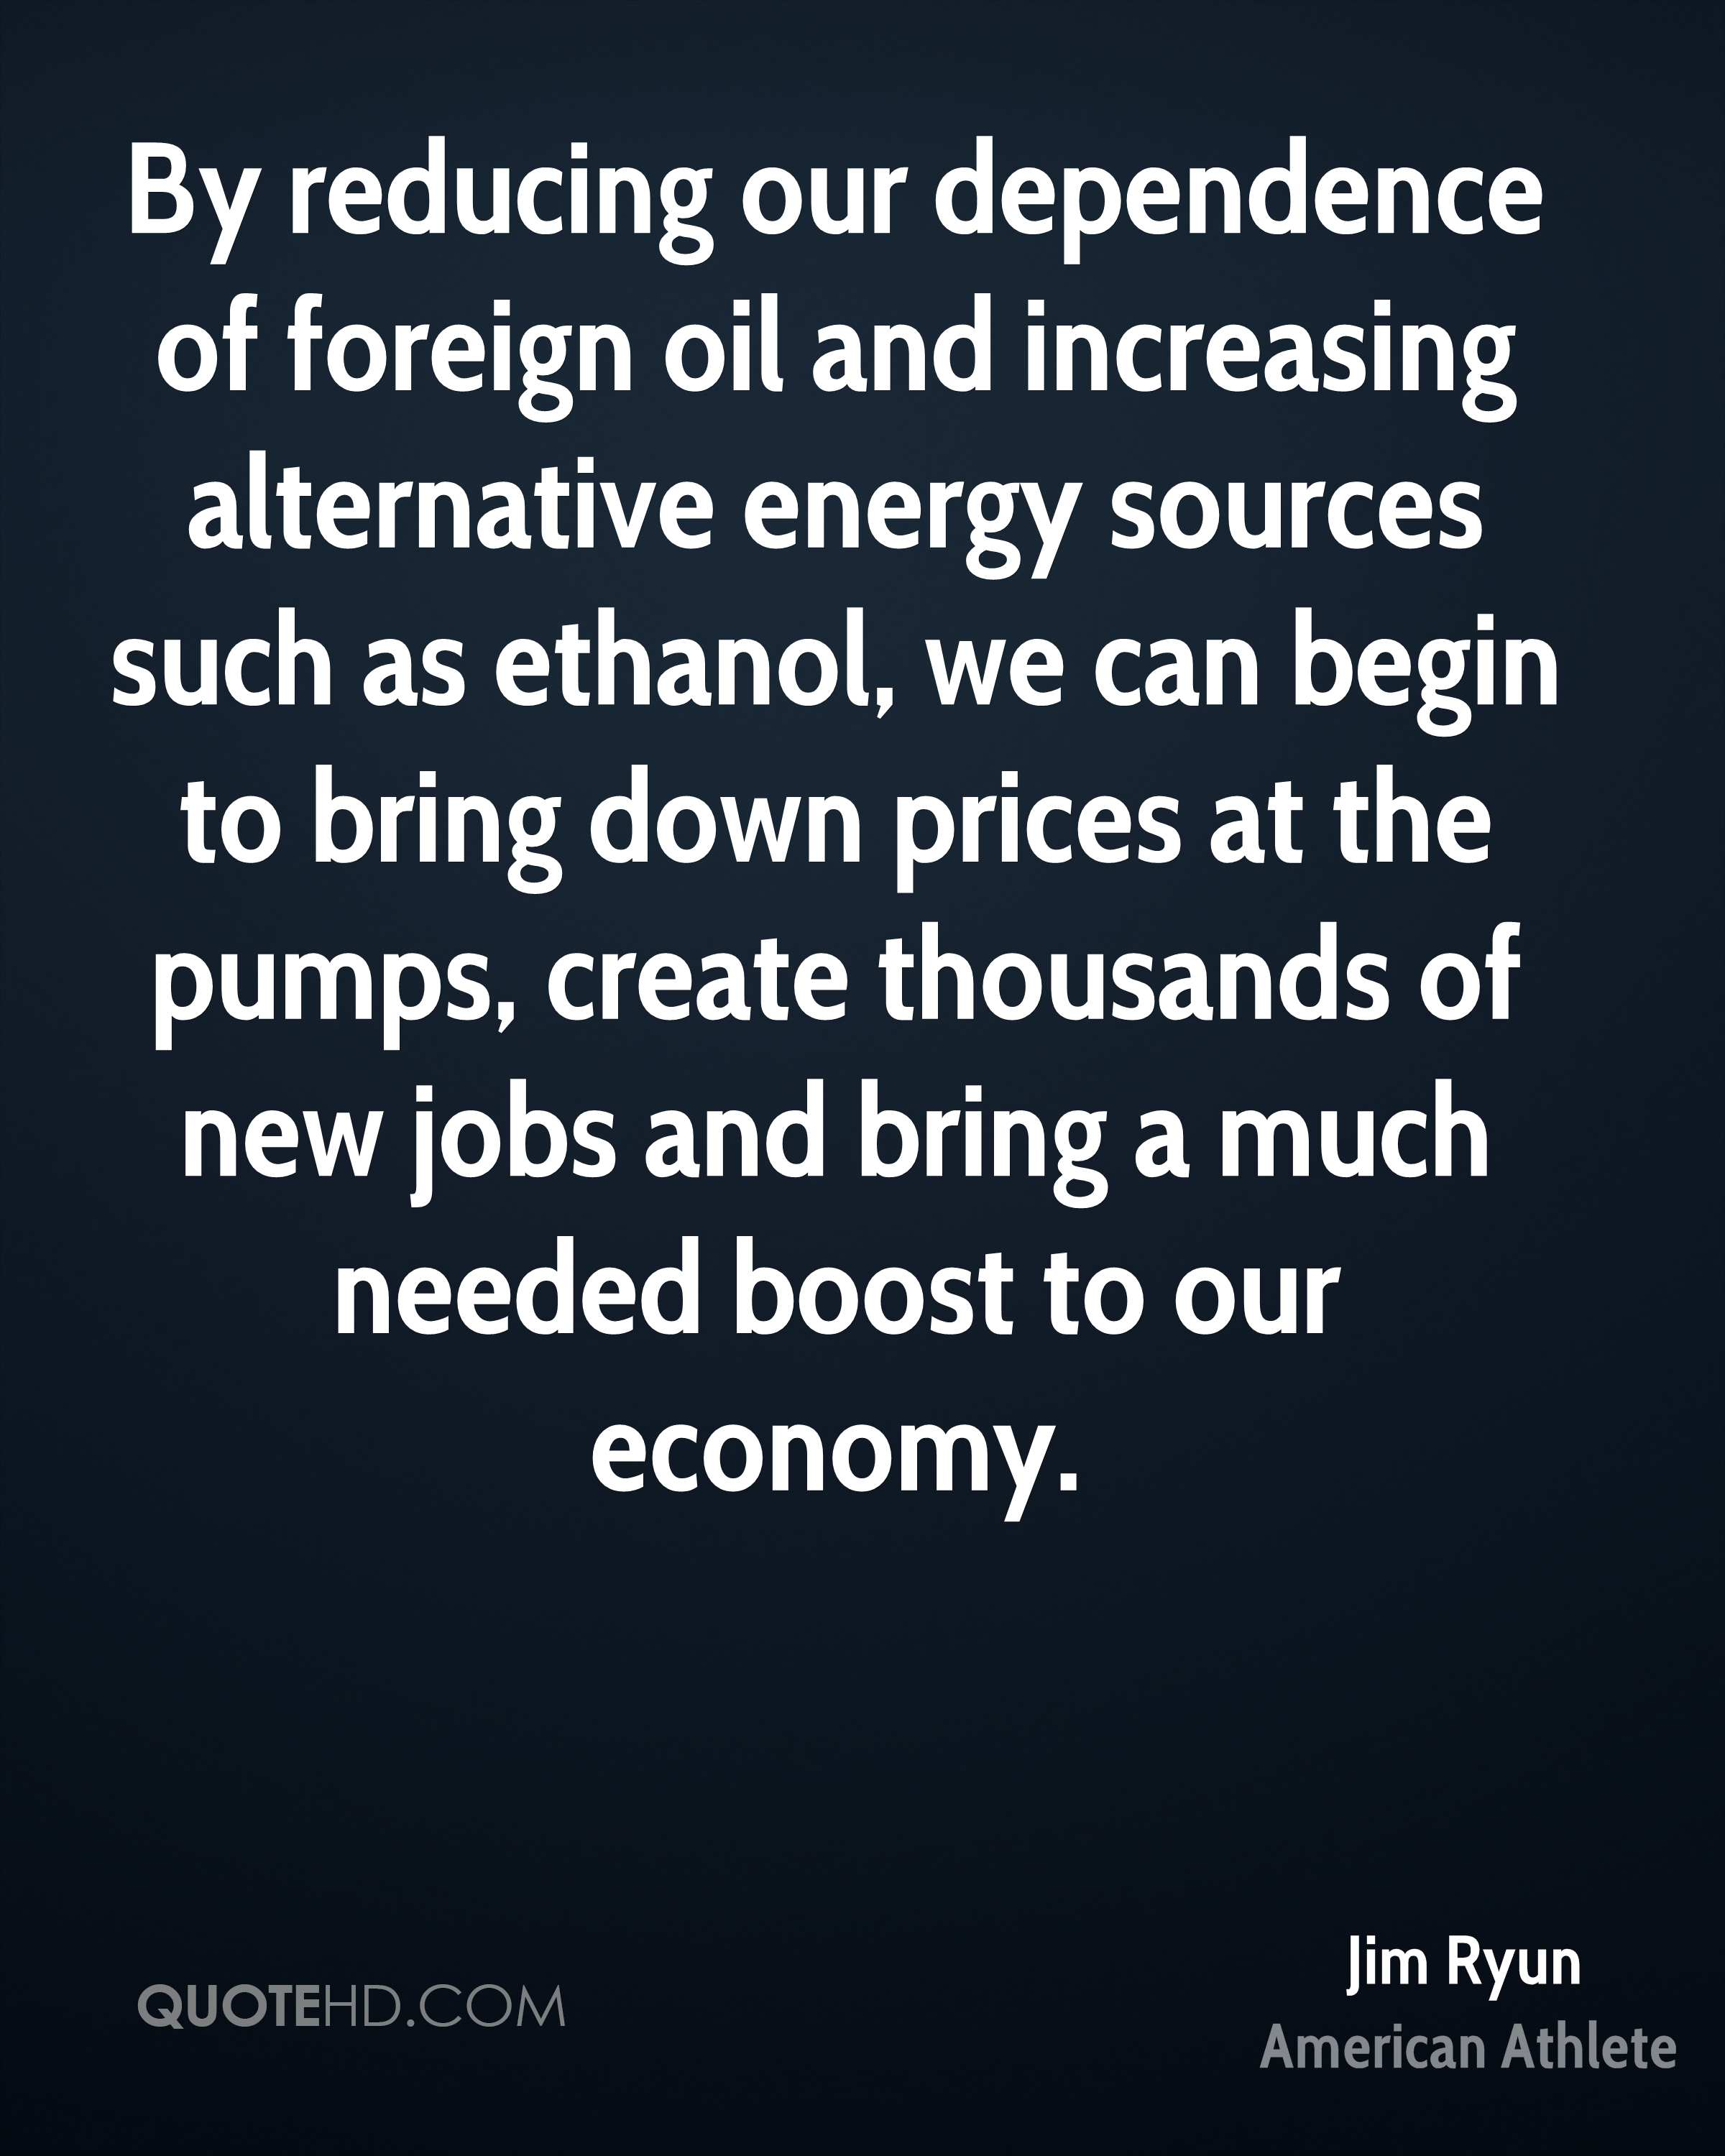 By reducing our dependence of foreign oil and increasing alternative energy sources such as ethanol, we can begin to bring down prices at the pumps, create thousands of new jobs and bring a much needed boost to our economy.